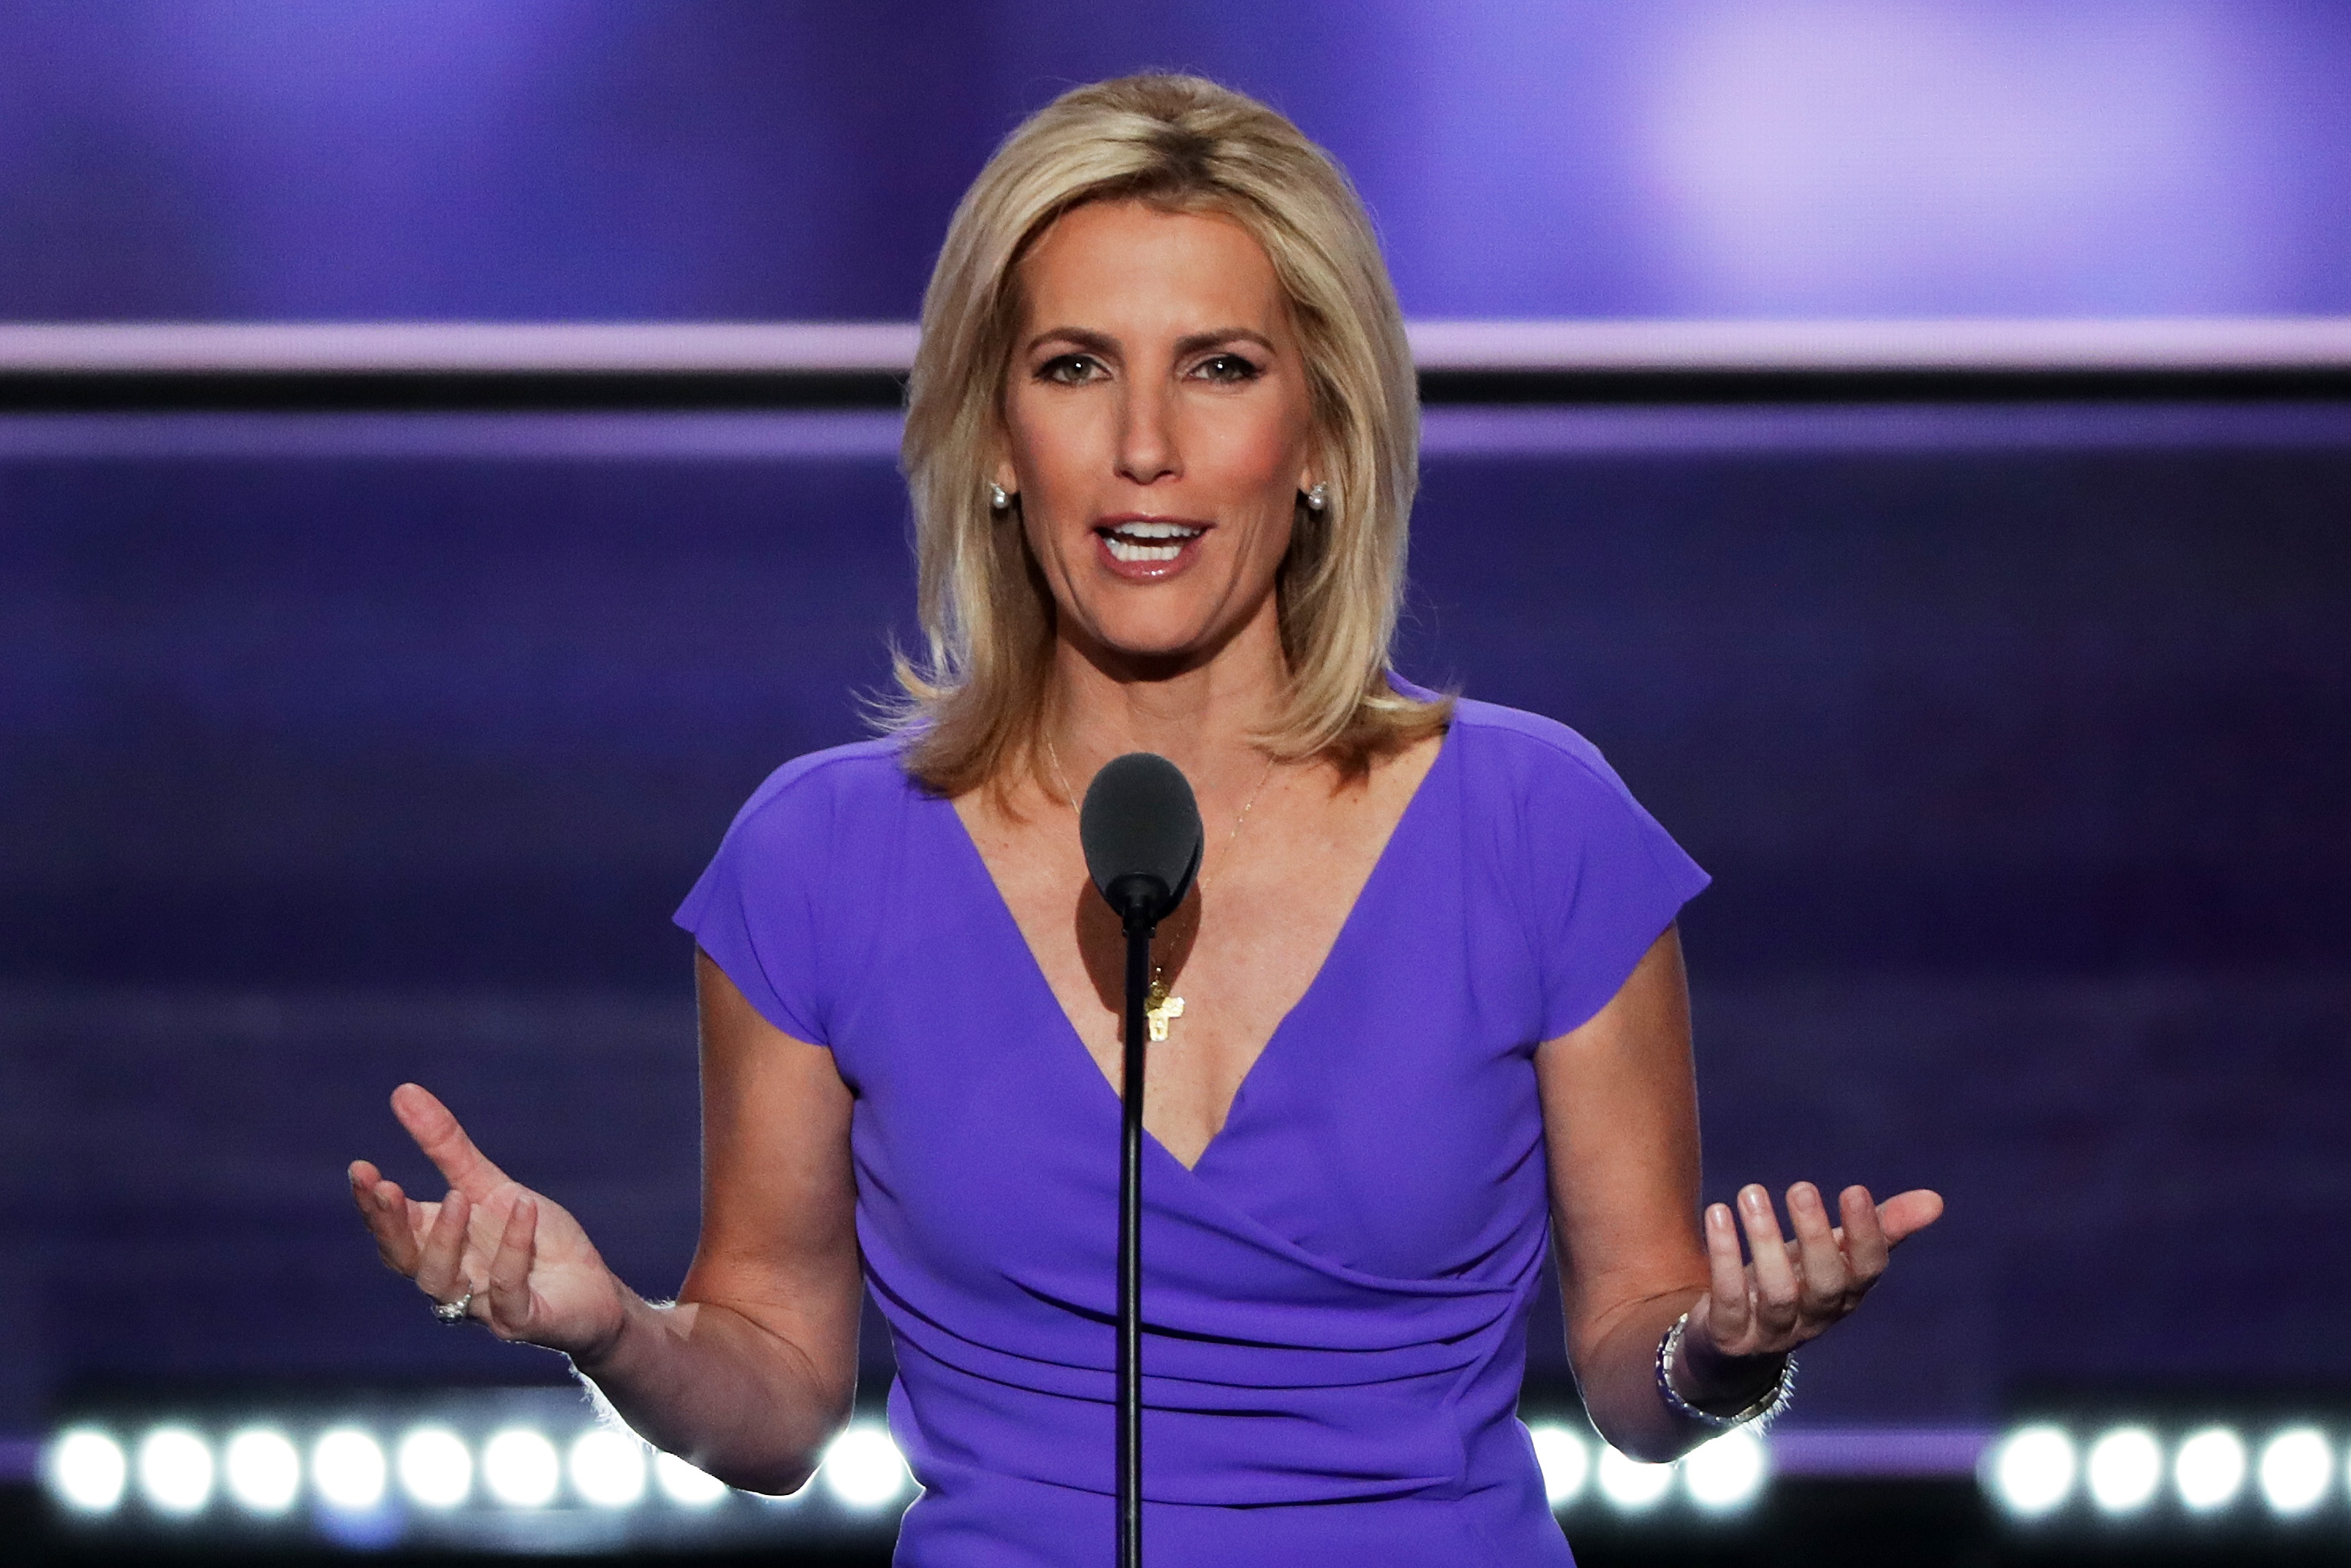 Political talk radio host Laura Ingraham delivers a speech at the Republican National Convention on July 20, 2016 in Cleveland, Ohio.